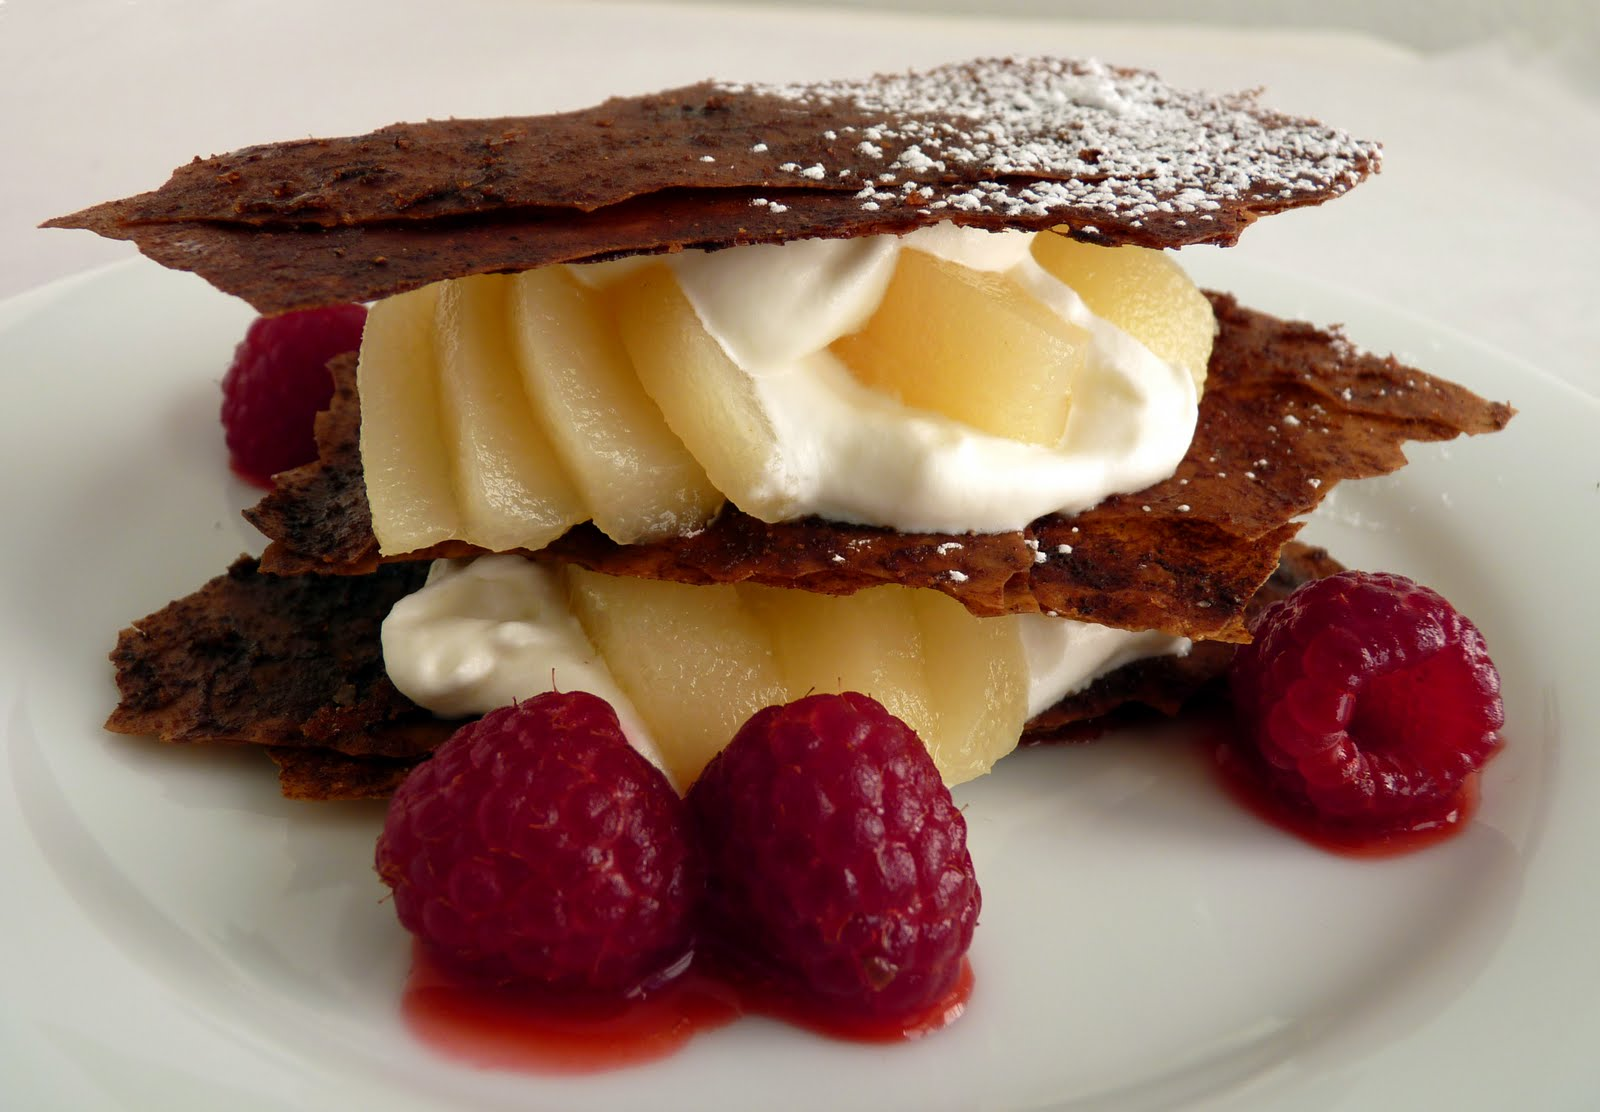 pastry studio: Chocolate Phyllo Napoleons with Pear and Raspberries